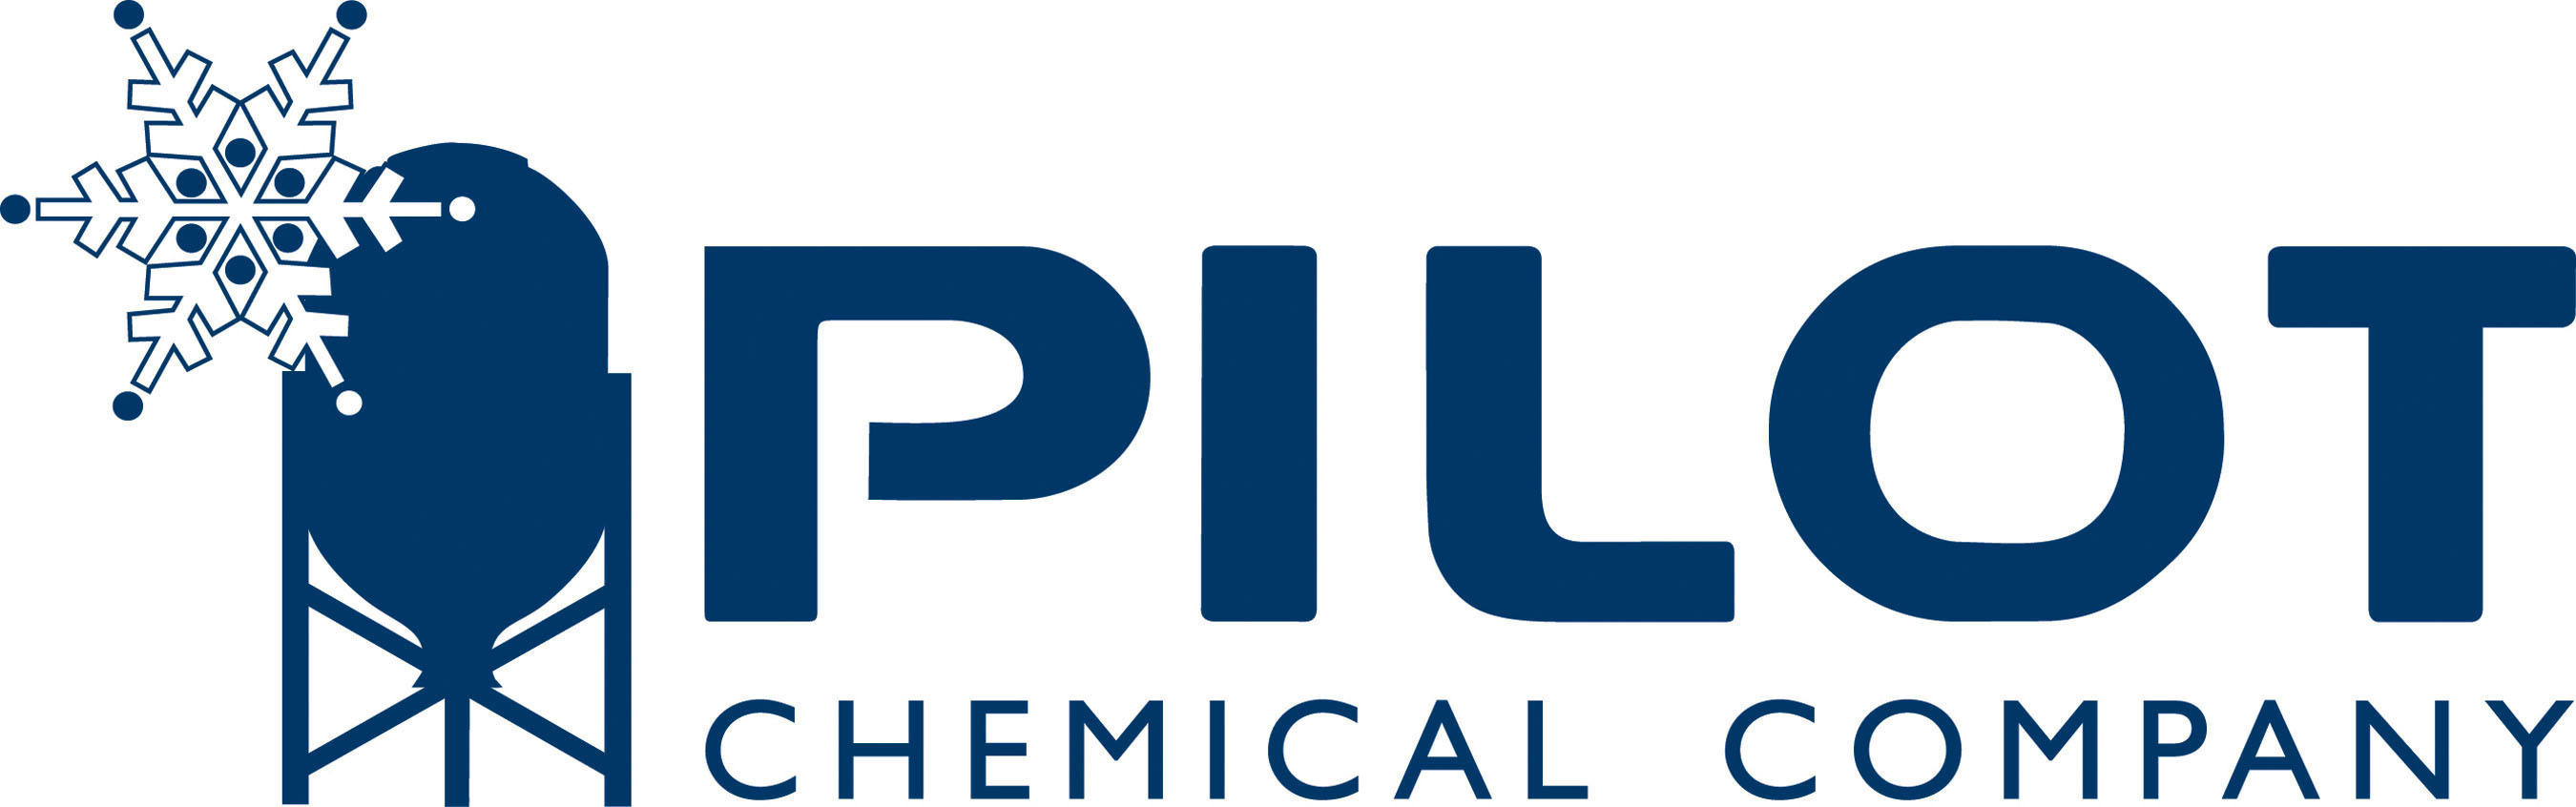 Pilot Chemical Company, www.pilotchemical.com.